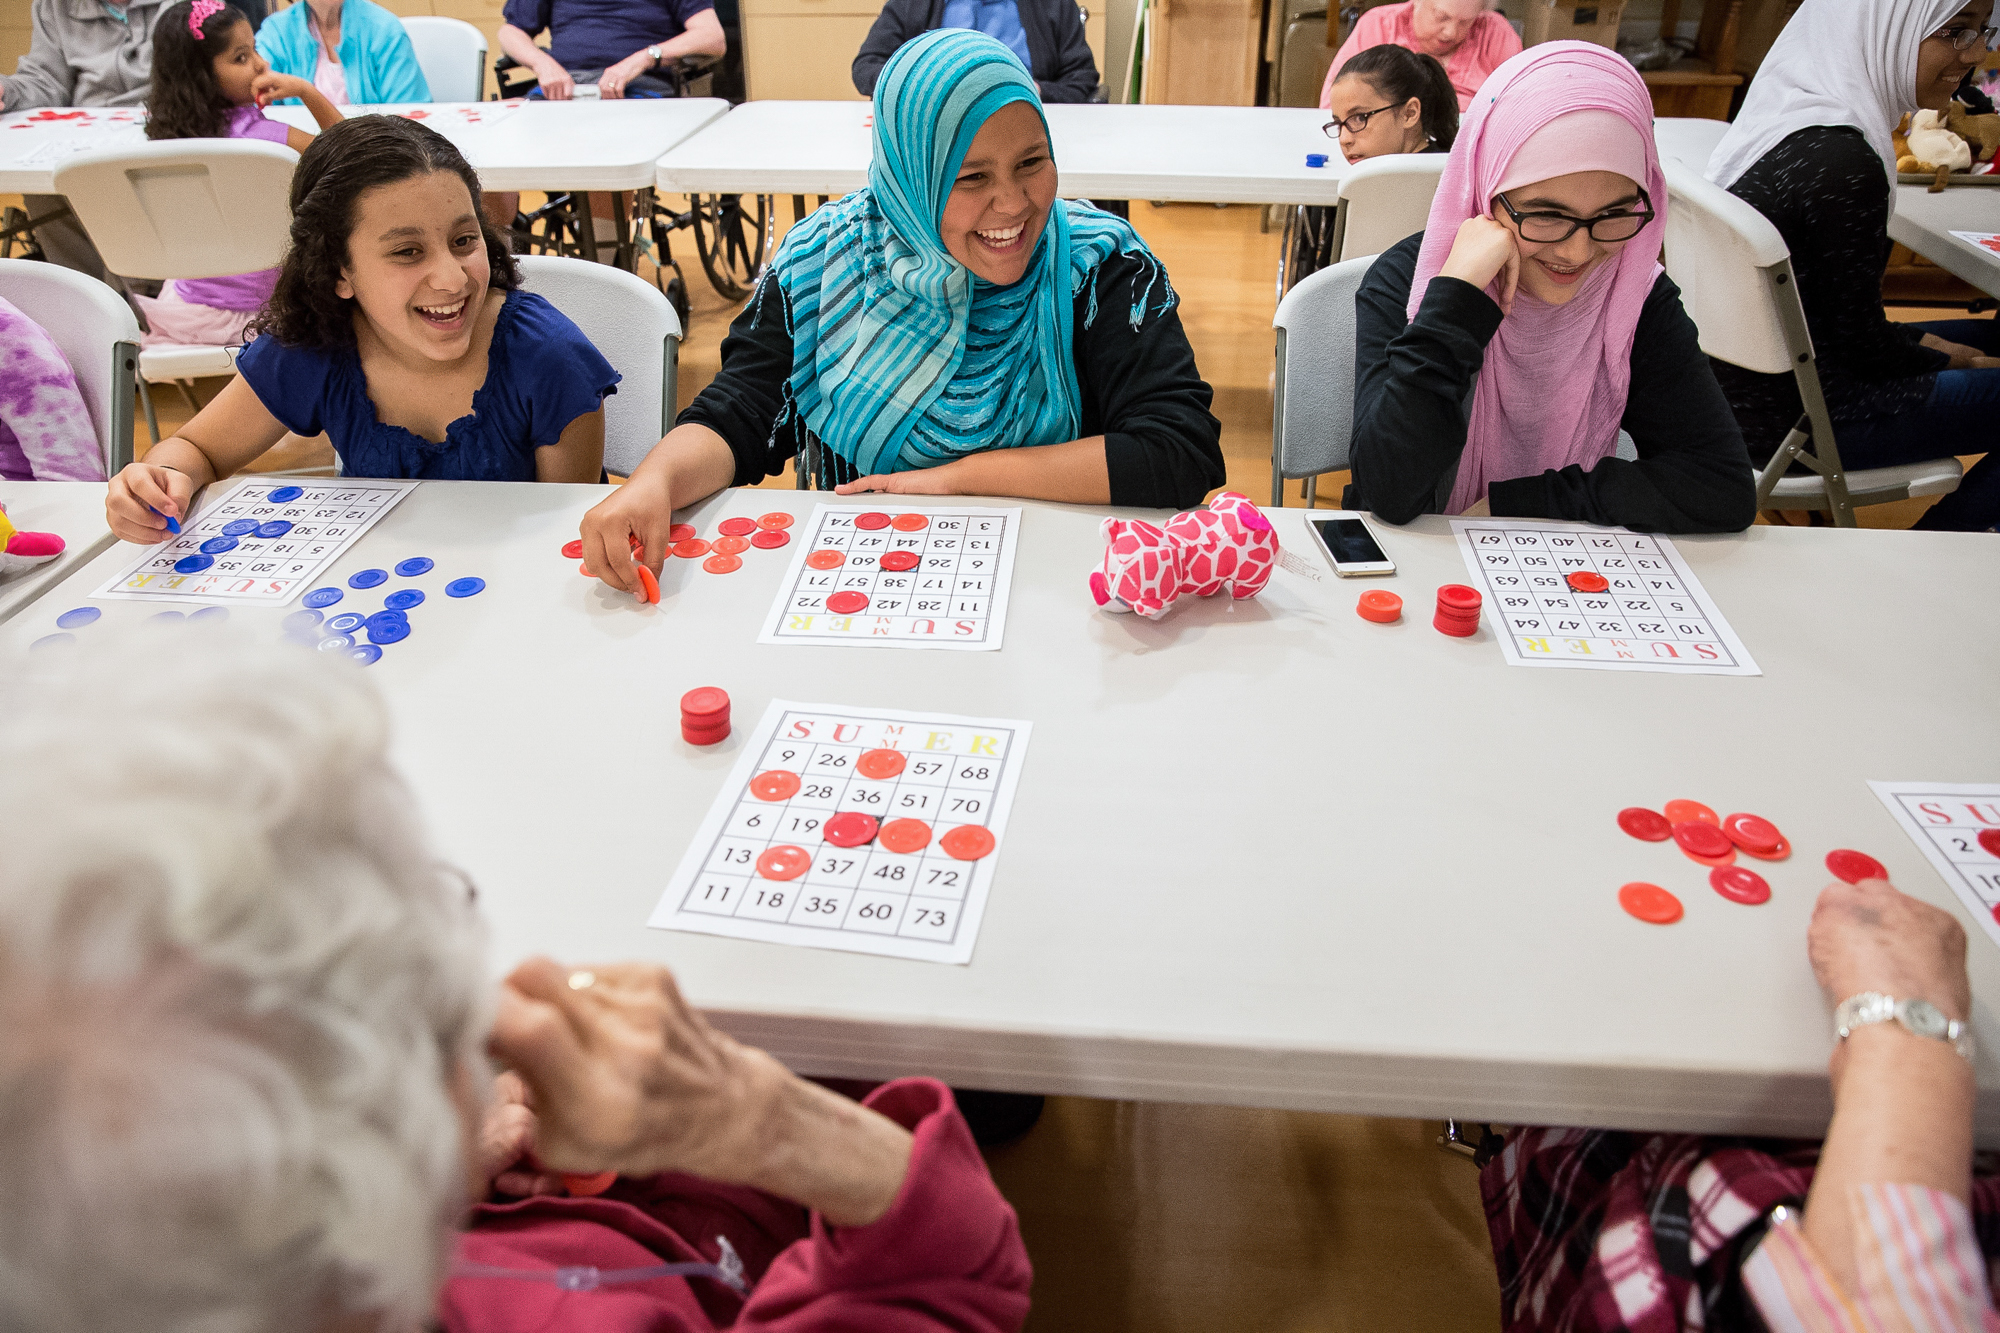 From left to right, Leila, Ayesha and Aisha play bingo with residents at Bethany Village in Mechanicsburg. The girls visit and participate in activities with the residents at the nursing home twice a month as part of their group, Dawah in Action.